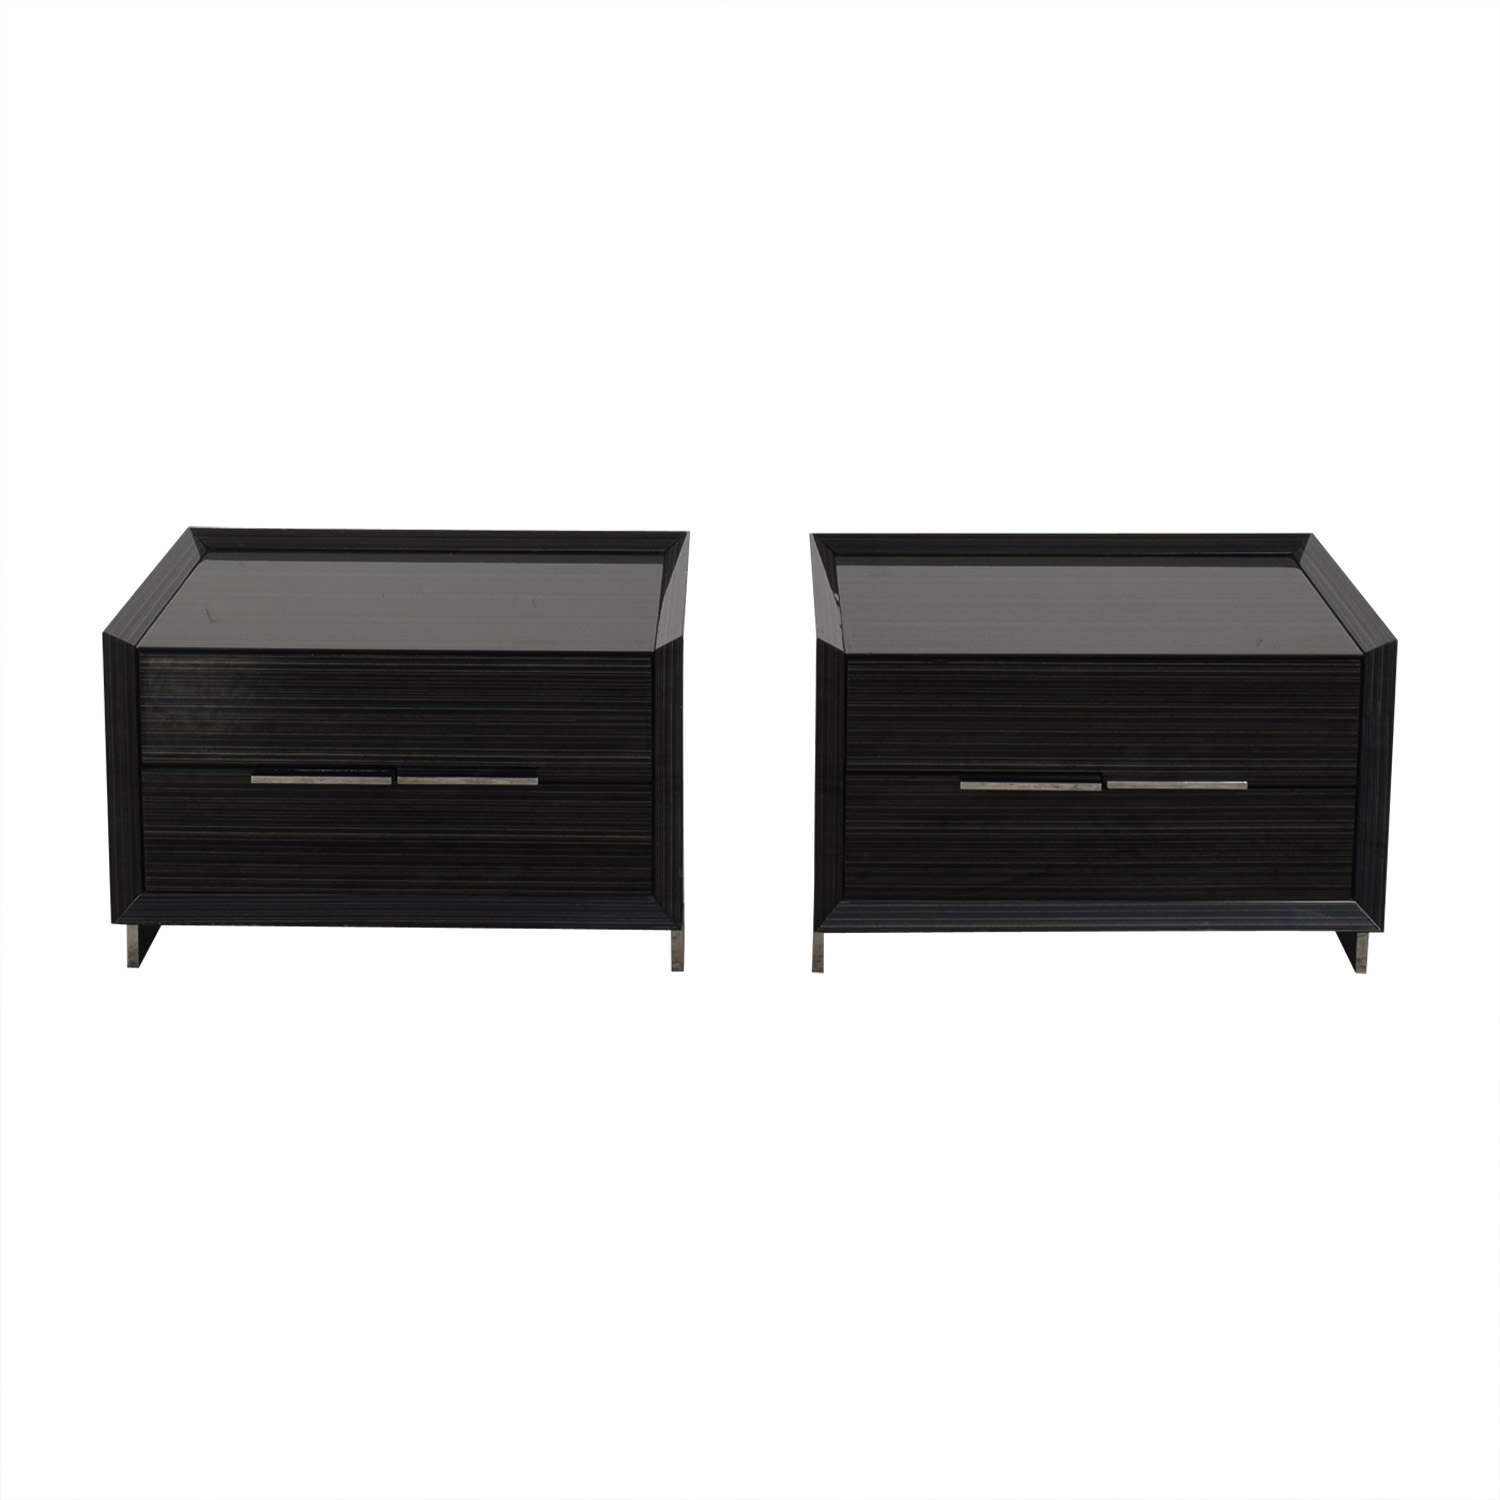 Rossetto Nightstands Rossetto